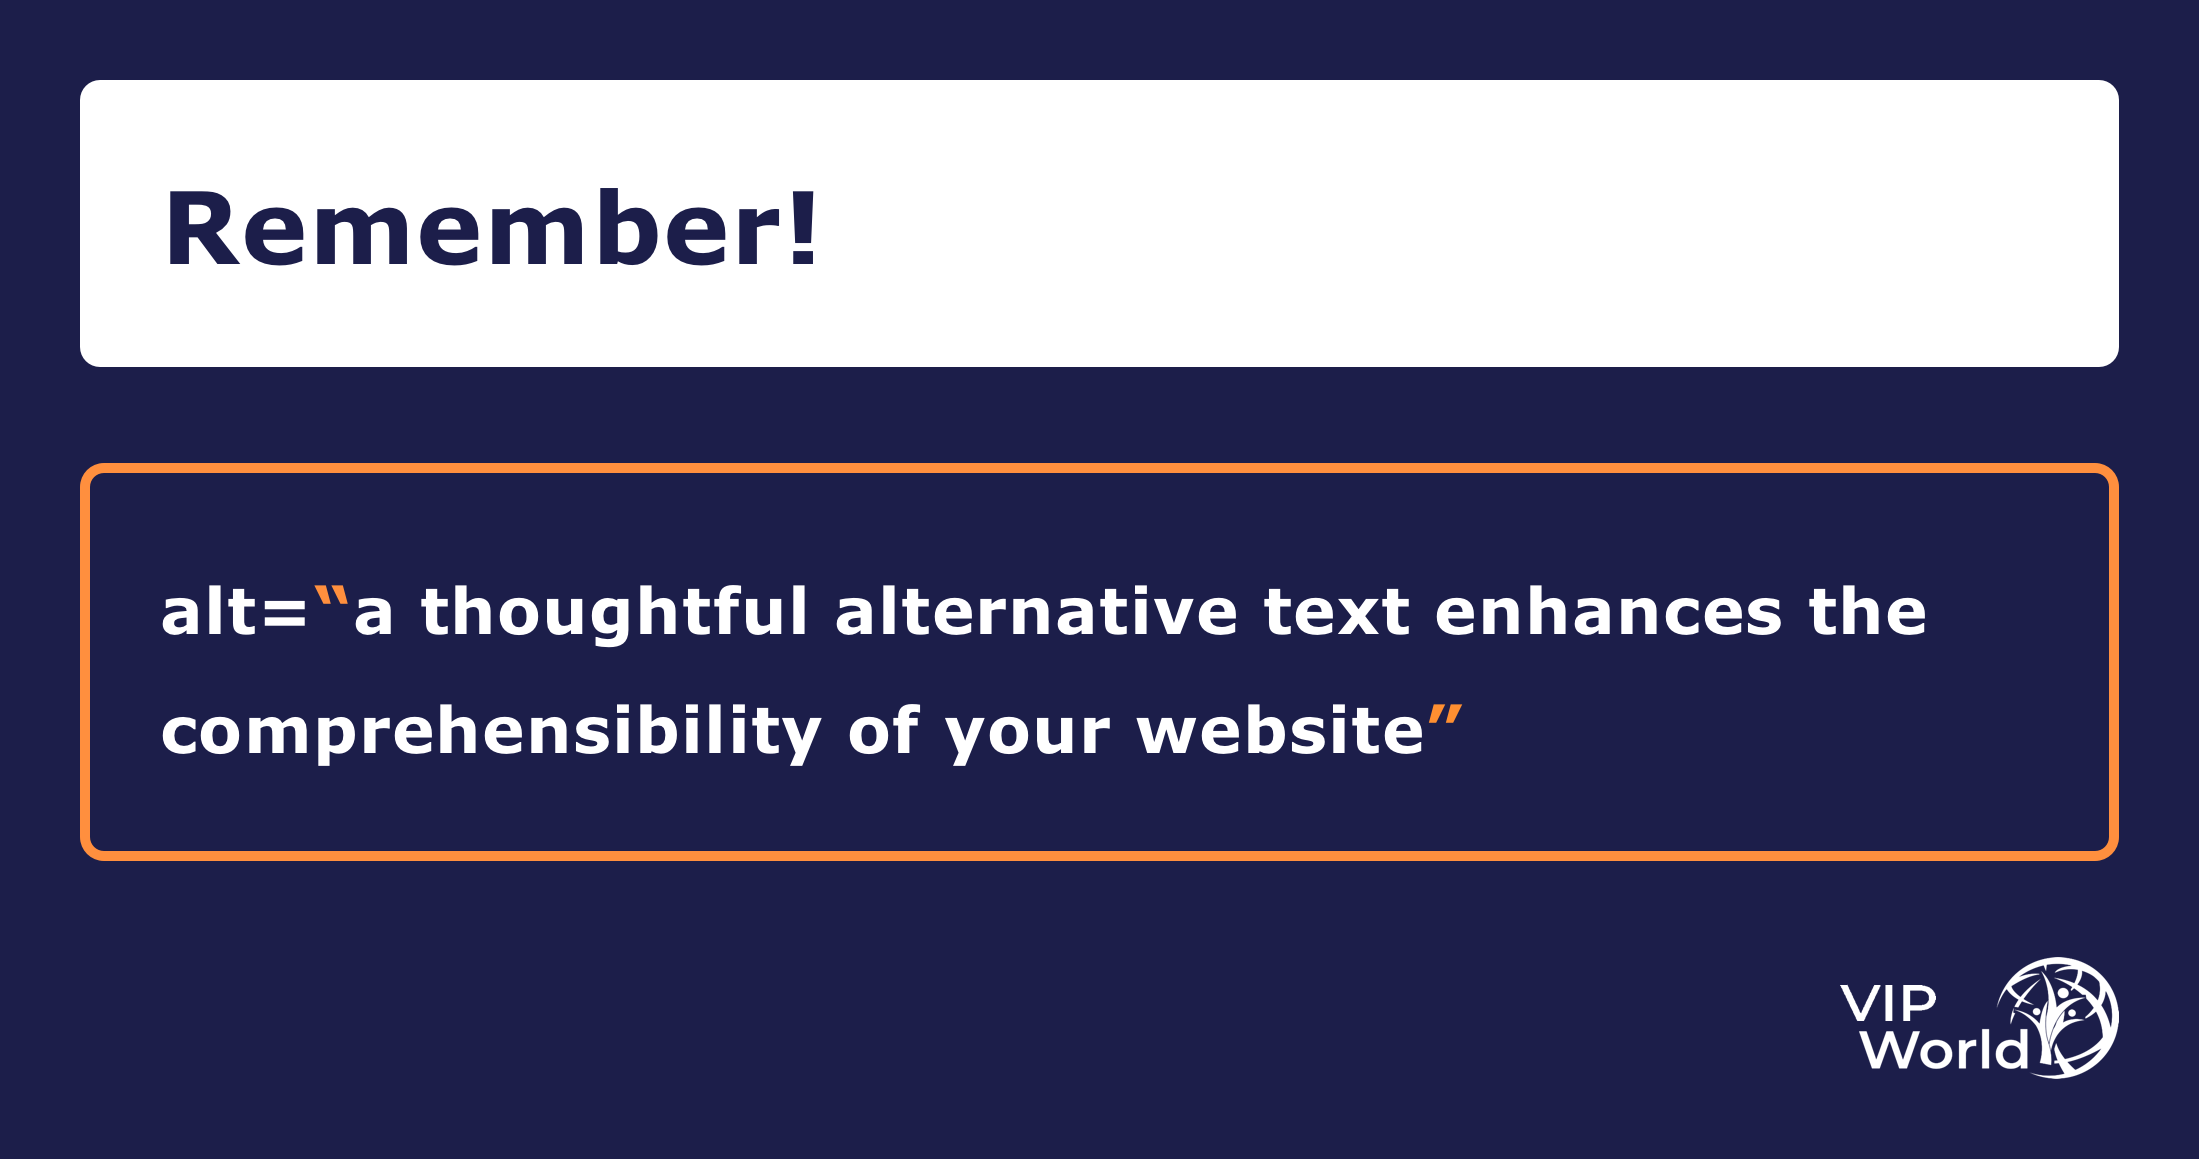 Quote: a thoughtful alternative text enhances the comprehensibility of your website